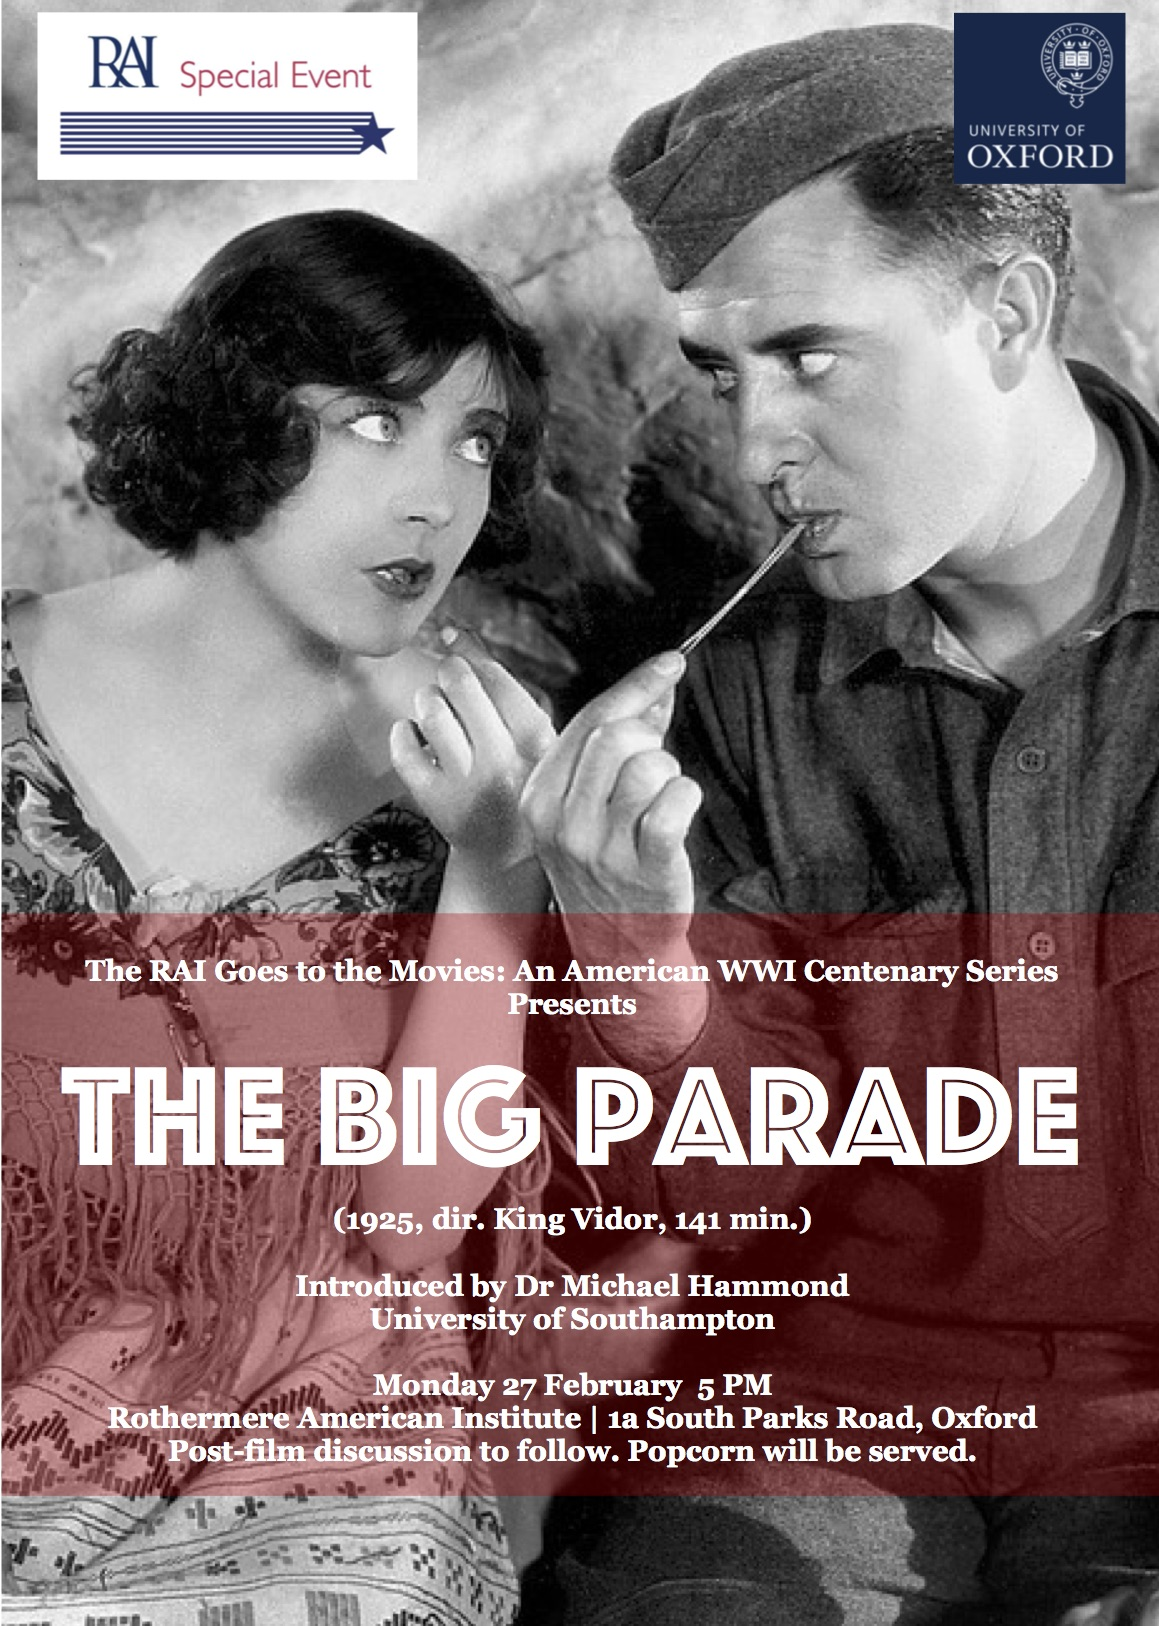 The RAI Goes to the Movies: An American First World War Centenary Series - The Big Parade